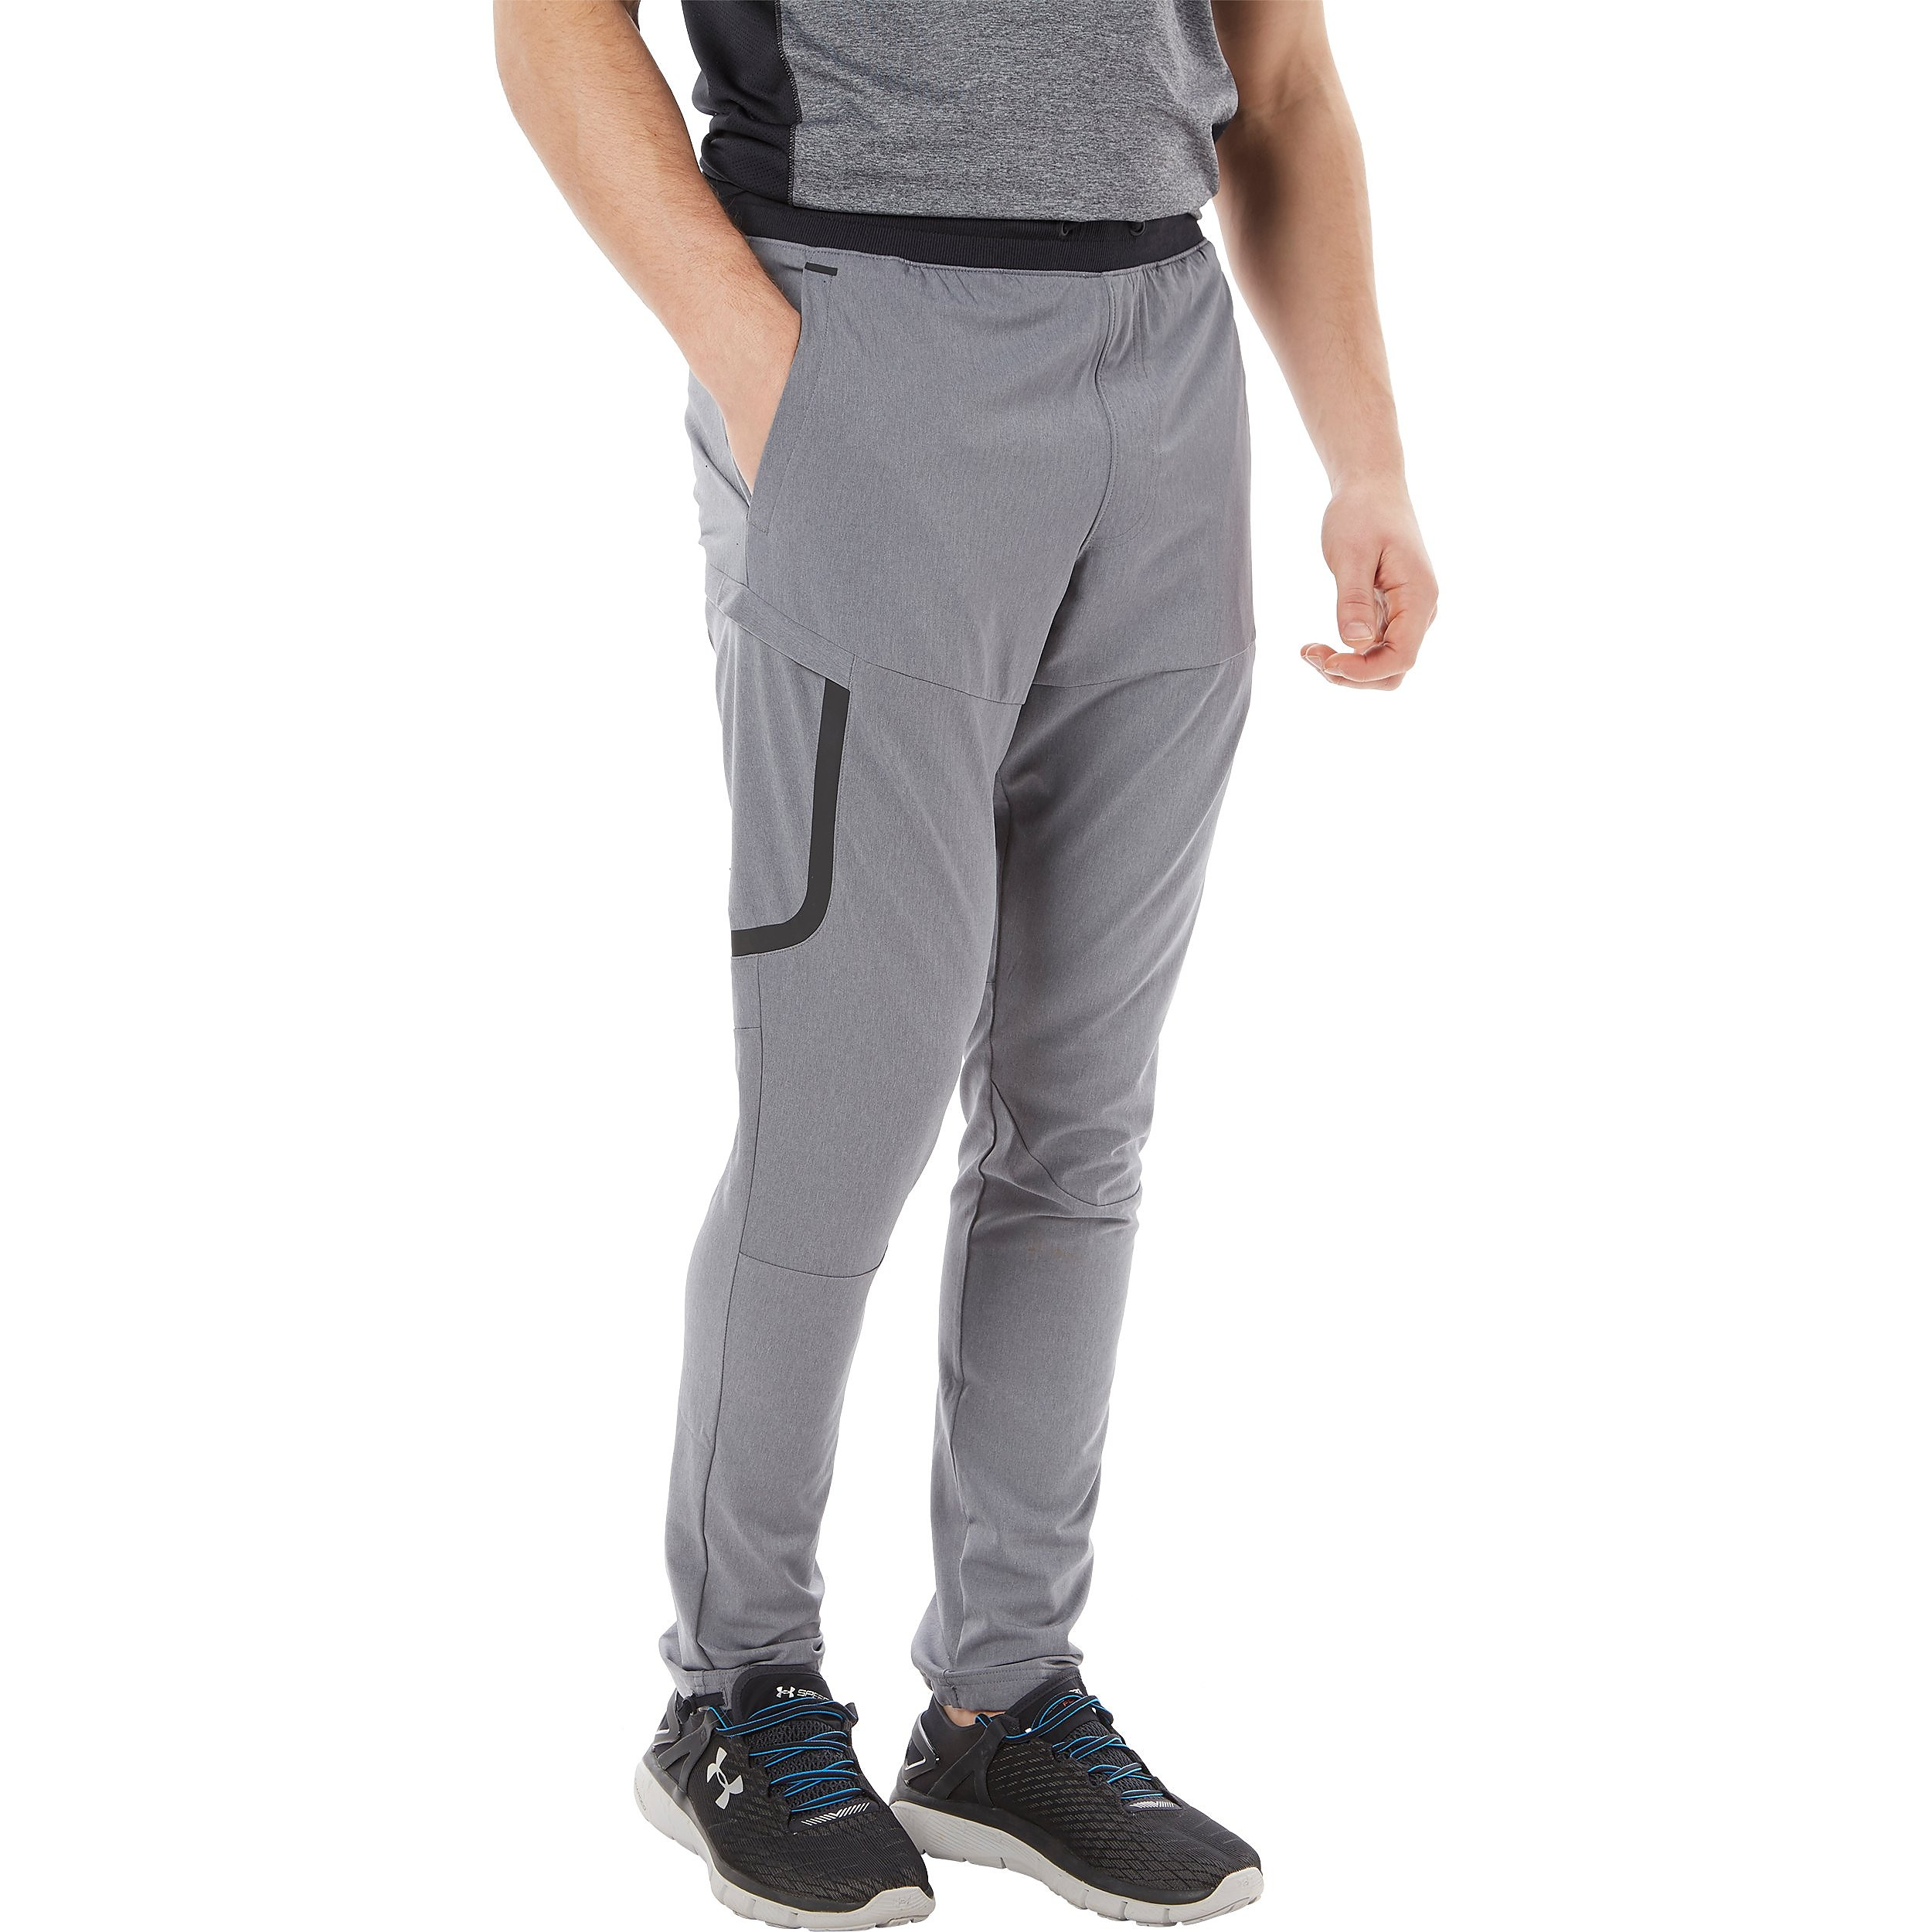 Men's Under Armour Sportstyle Elite Cargo Training Trousers - Grey/Black, Grey/Black